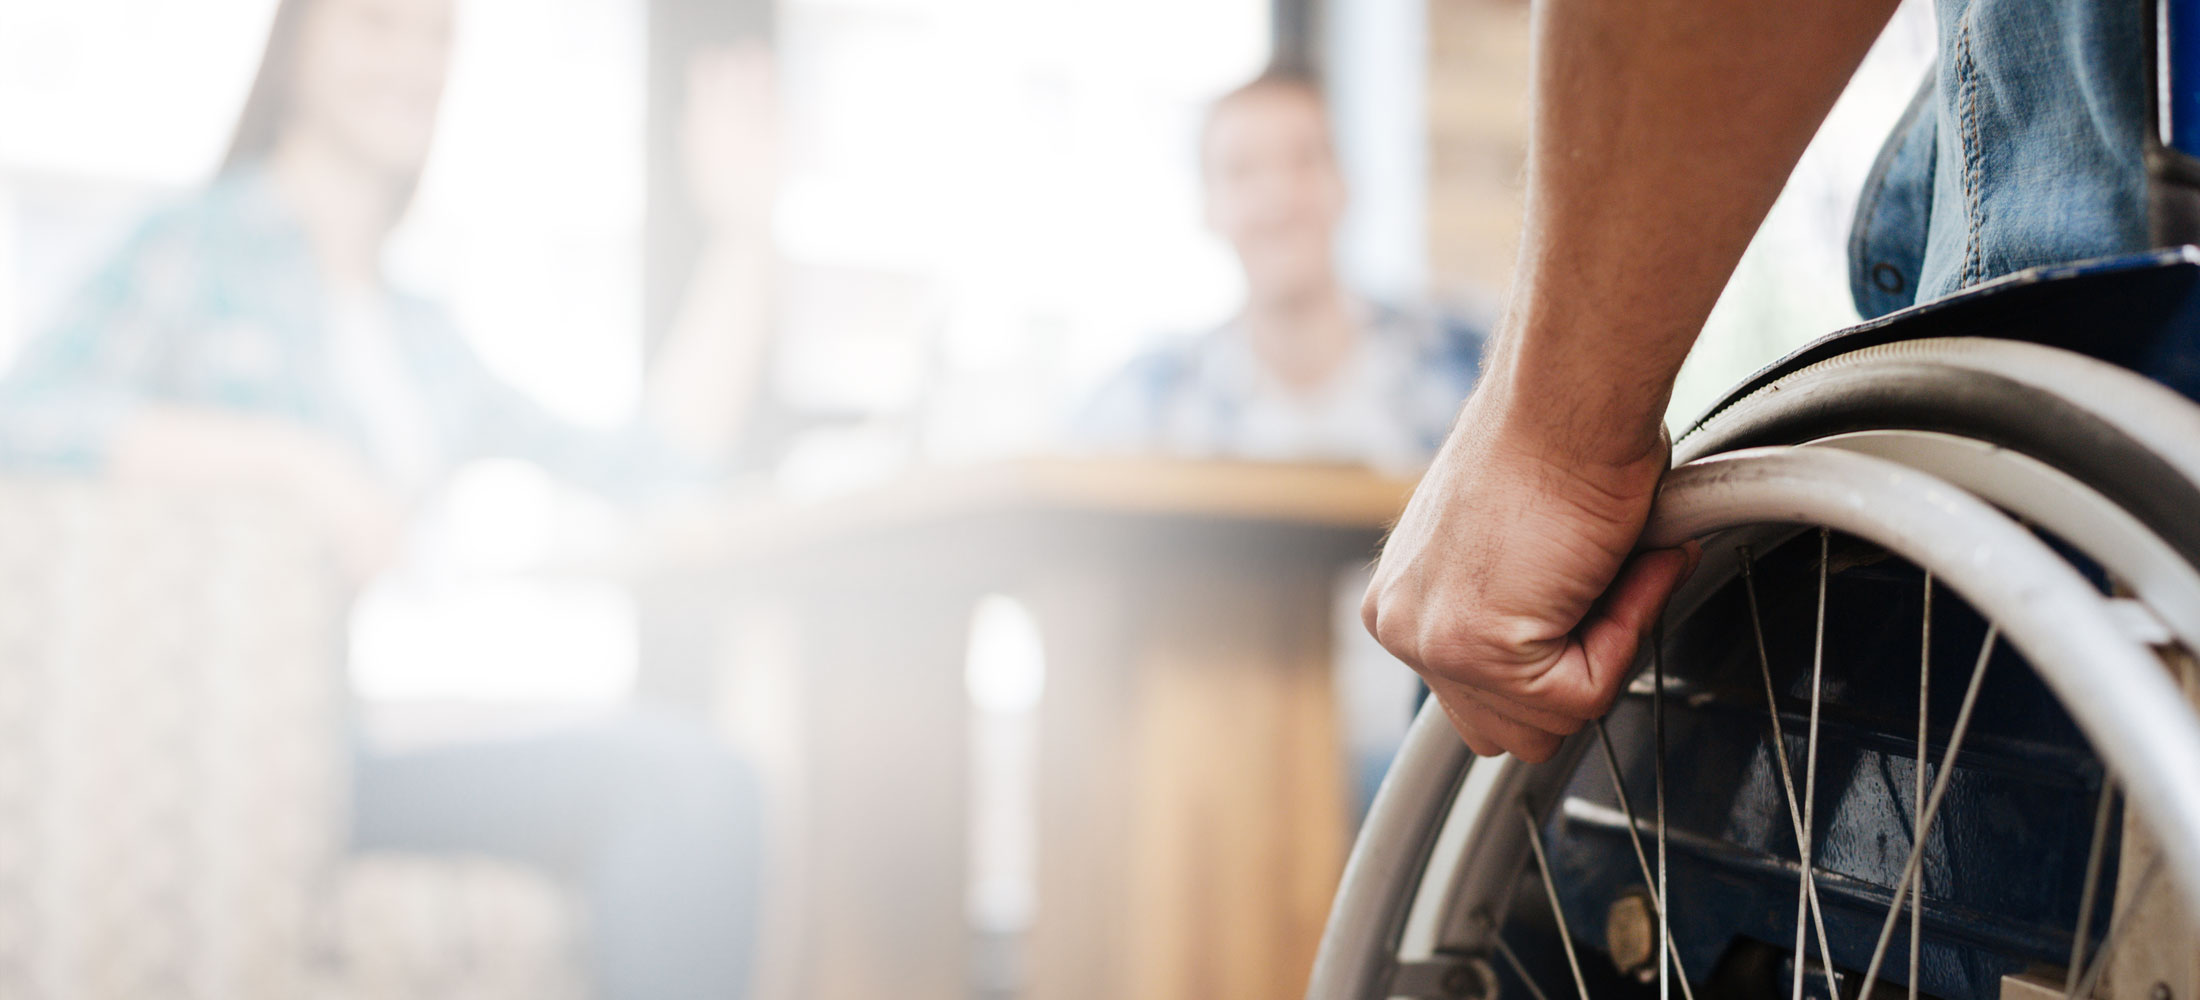 Wheelchair accessible image